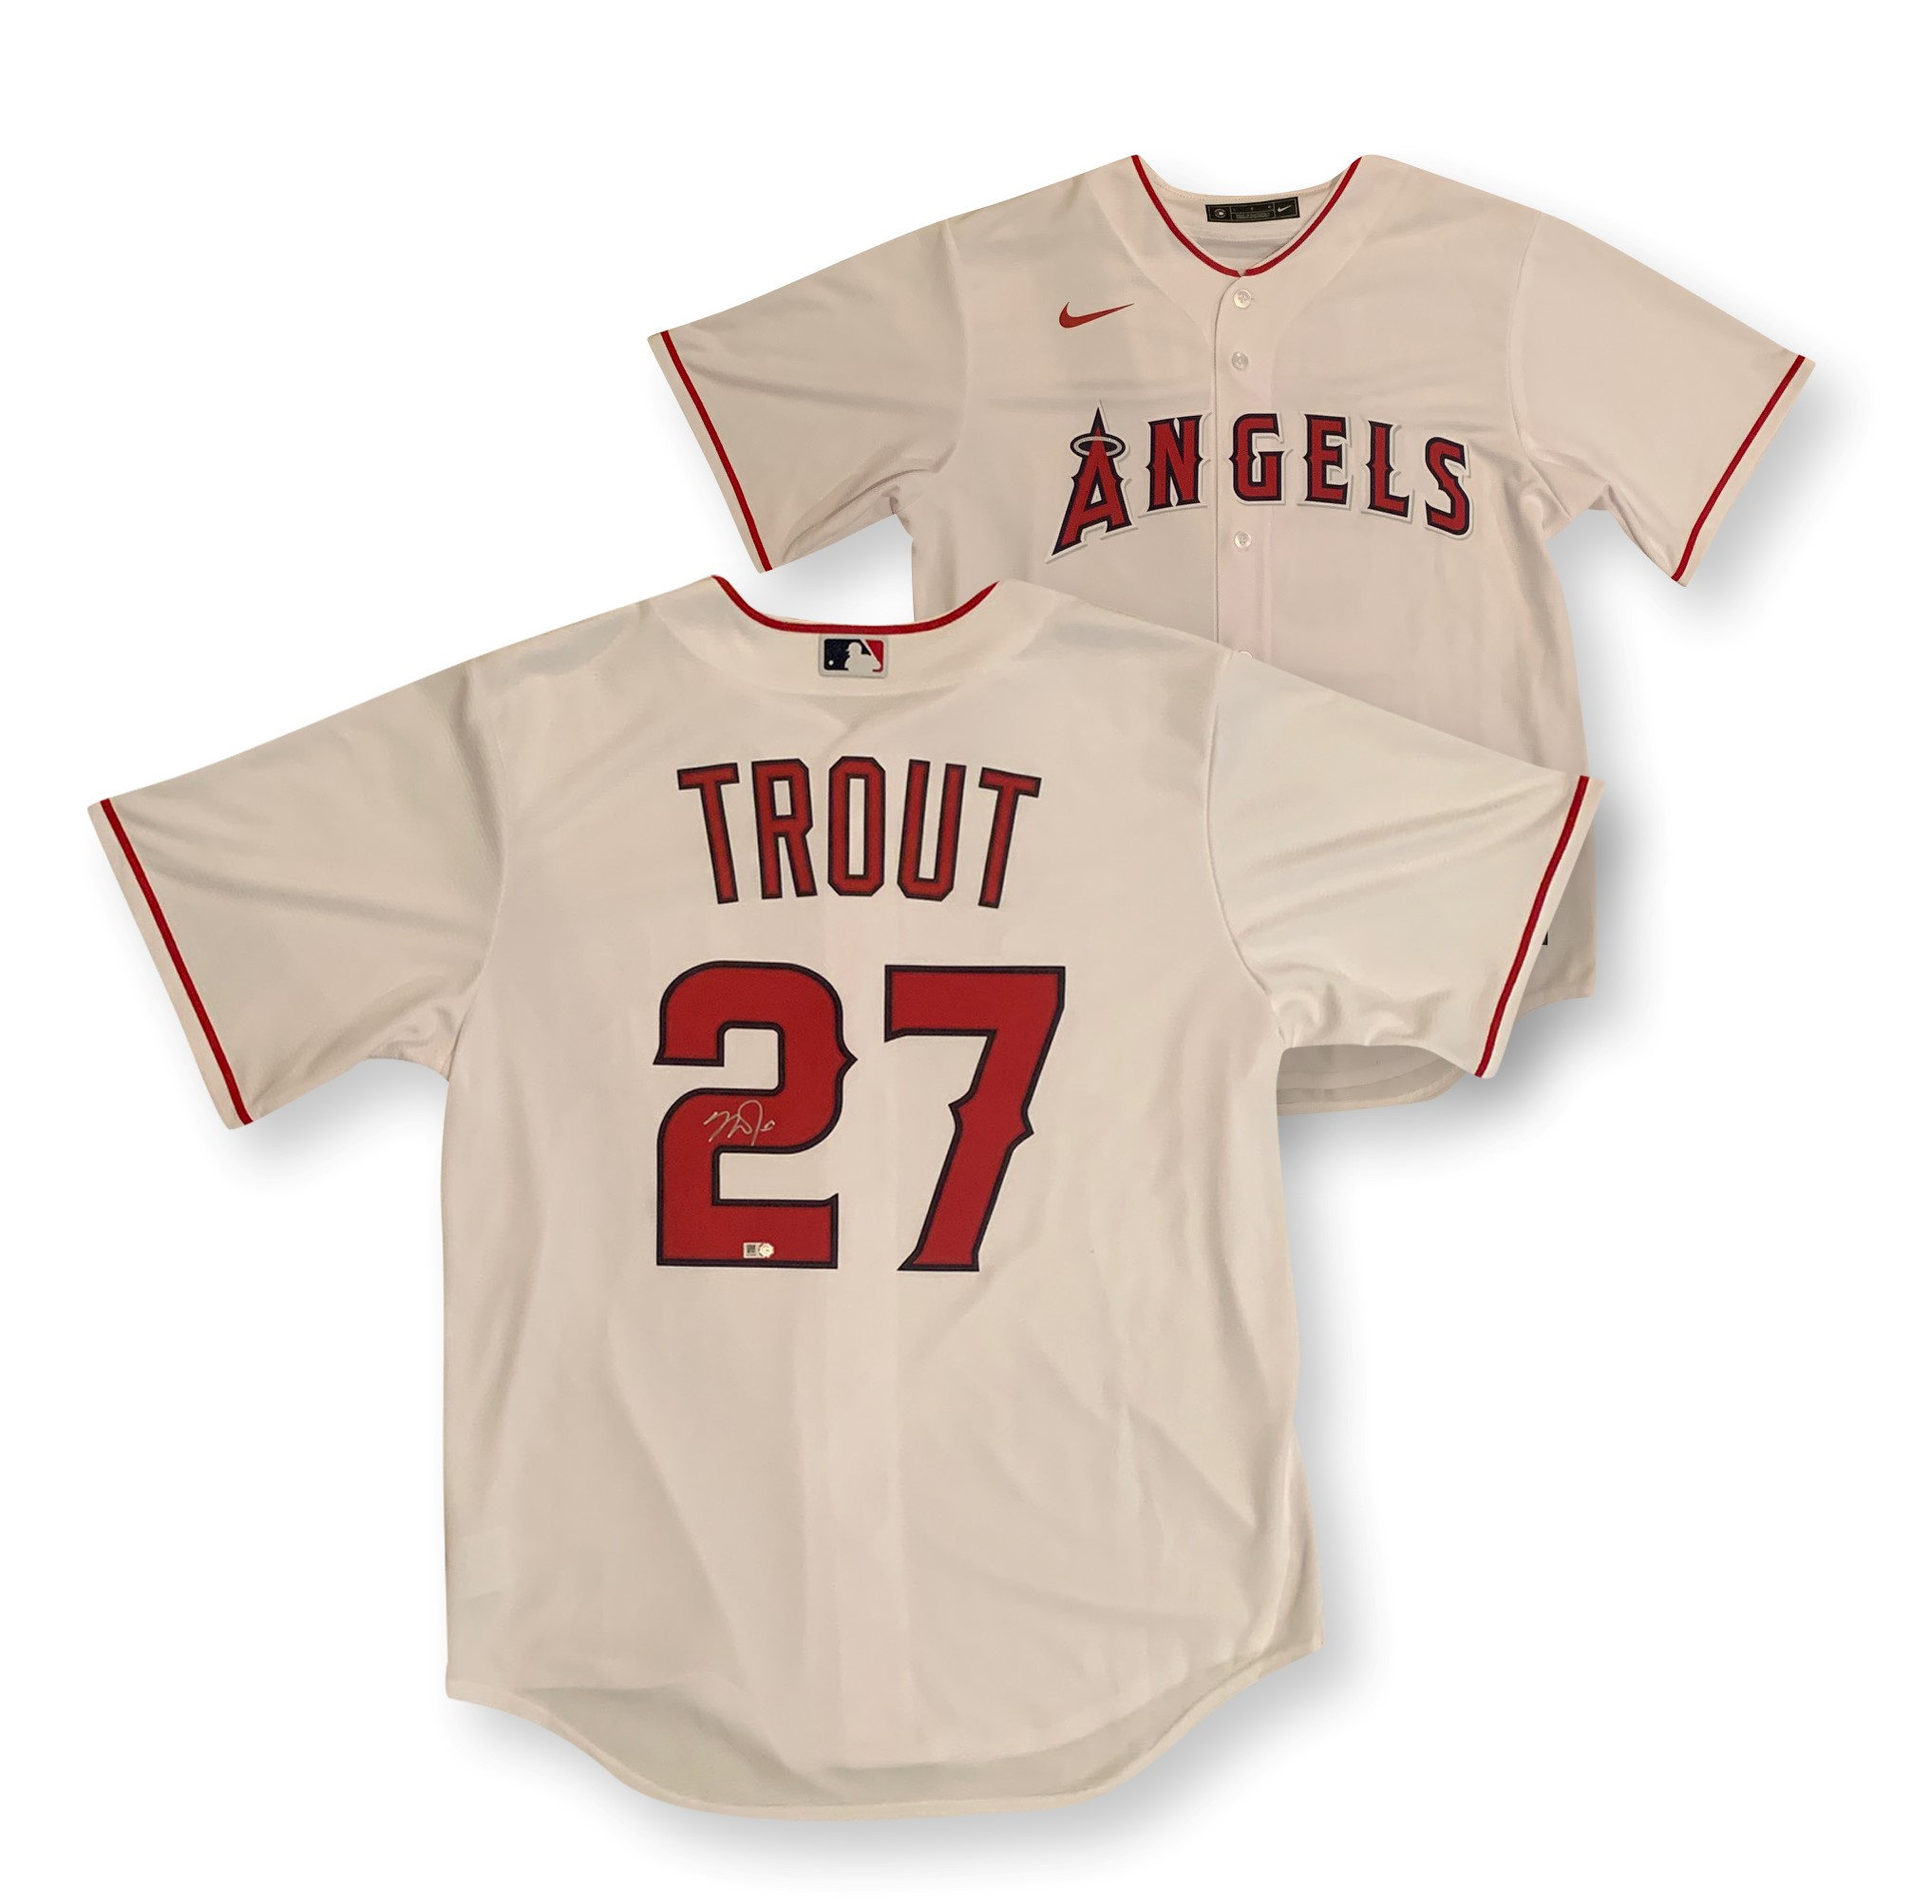 Mike Trout Autographed Los Angeles Angels Signed Official Nike Baseball Jersey MLB Authenticated COA